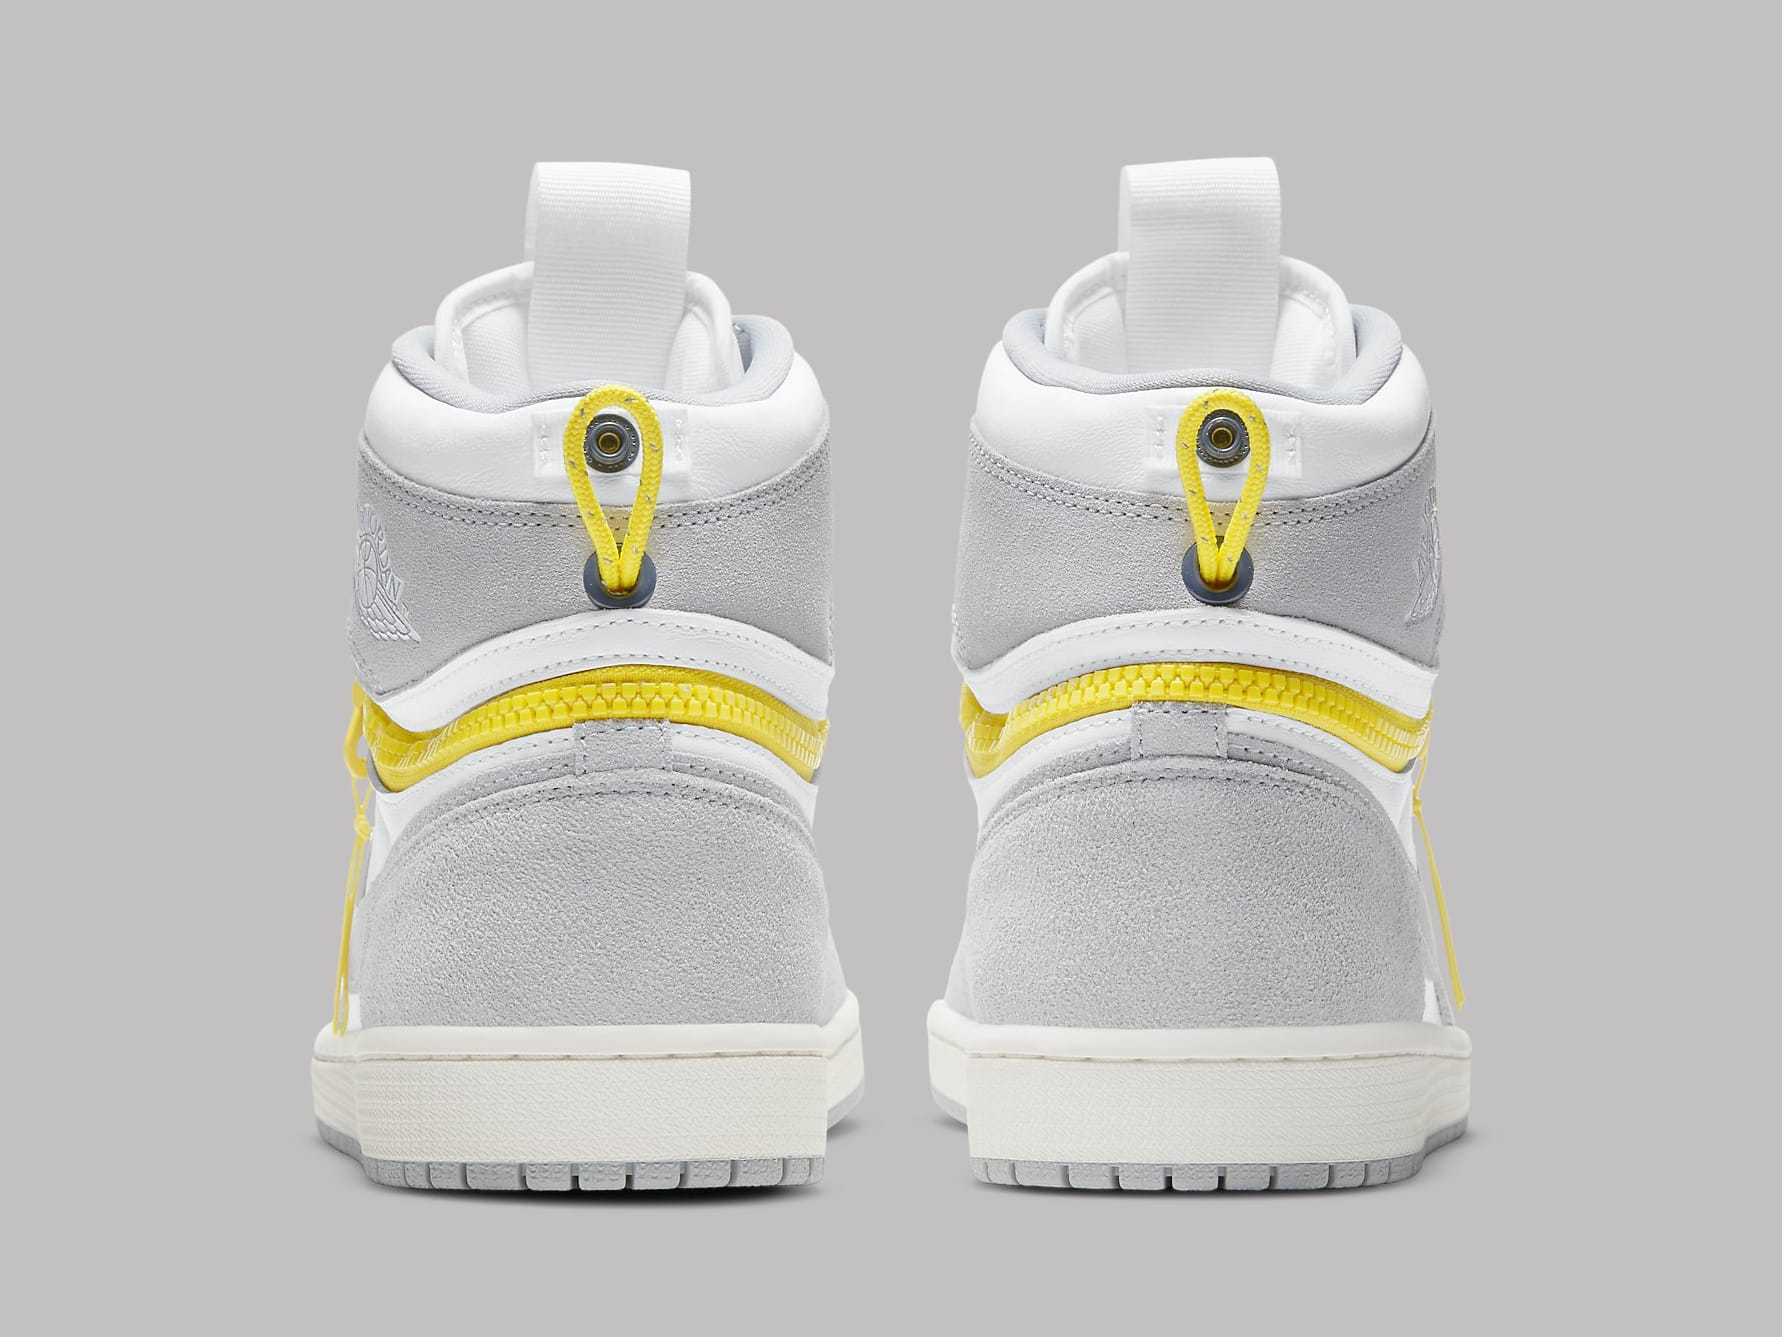 Air Jordan 1 High Switch White Light Smoke Grey Sail Tour Yellow Release Date CW6576-100 Heel